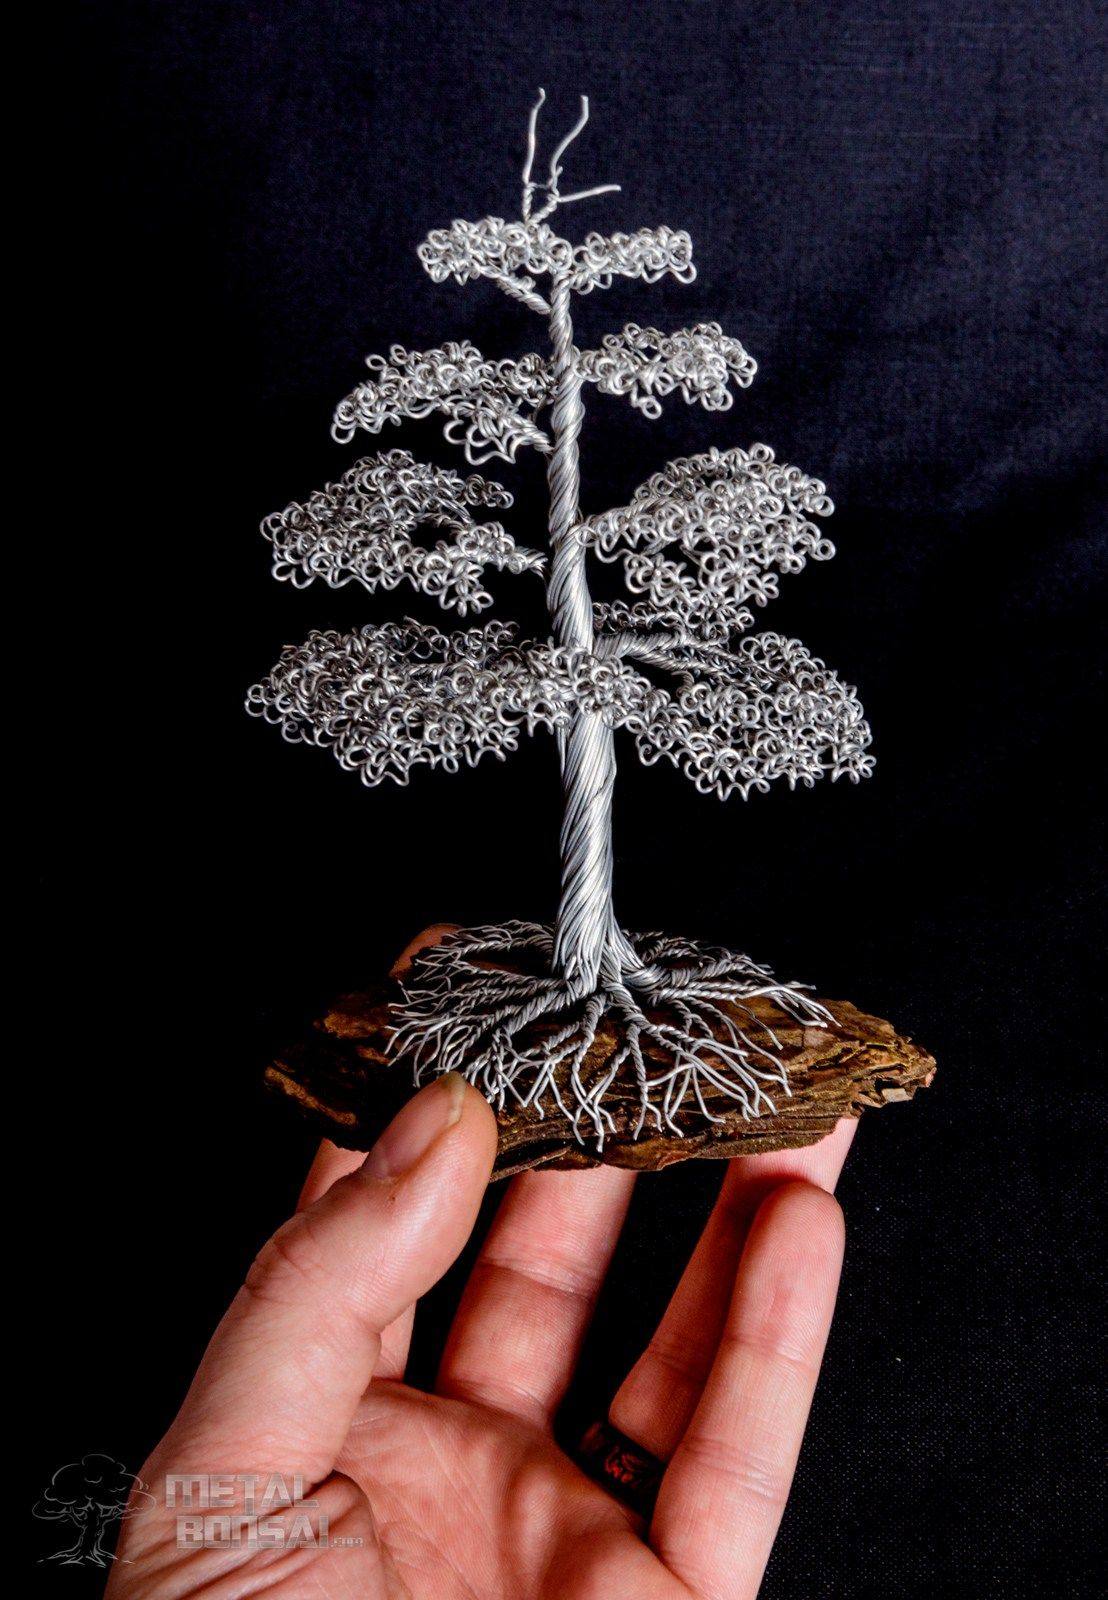 Chokkan Formal Upright Tree On Bark Base Metal Bonsai Wire Wiring Time Sculptures